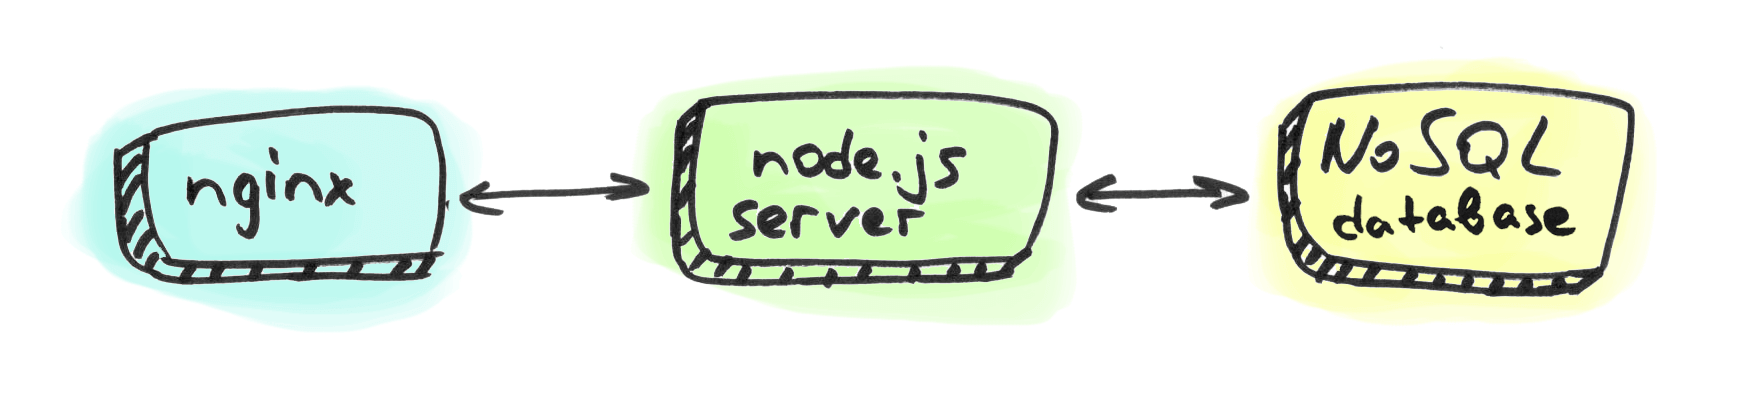 How We Improved Node js Server Response Time by 100 Times